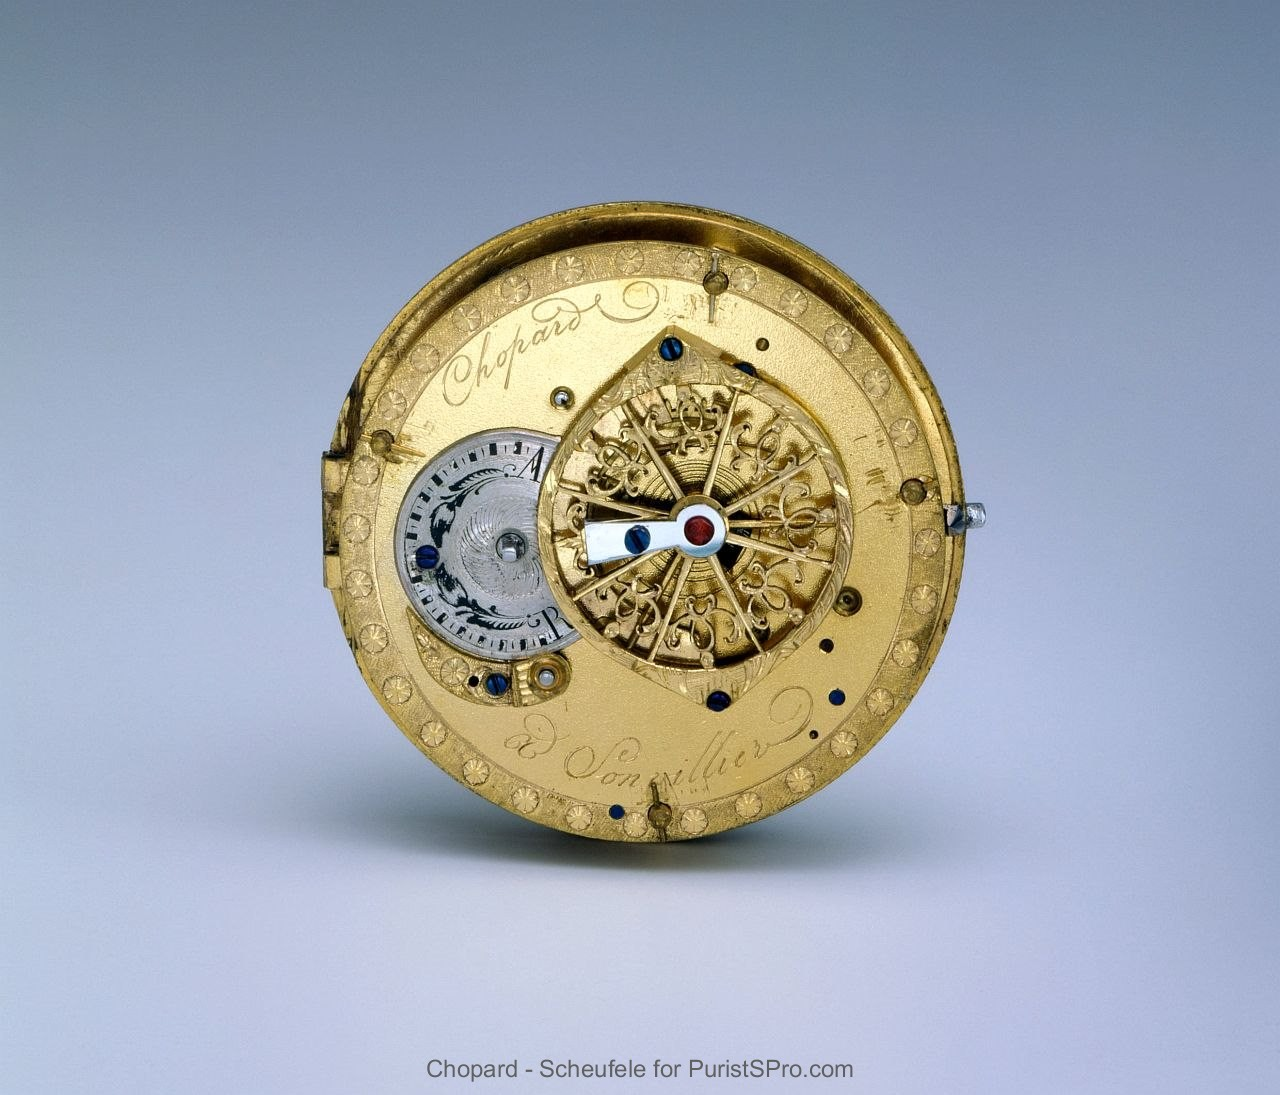 Movement of one of the first Chopard pocket watches